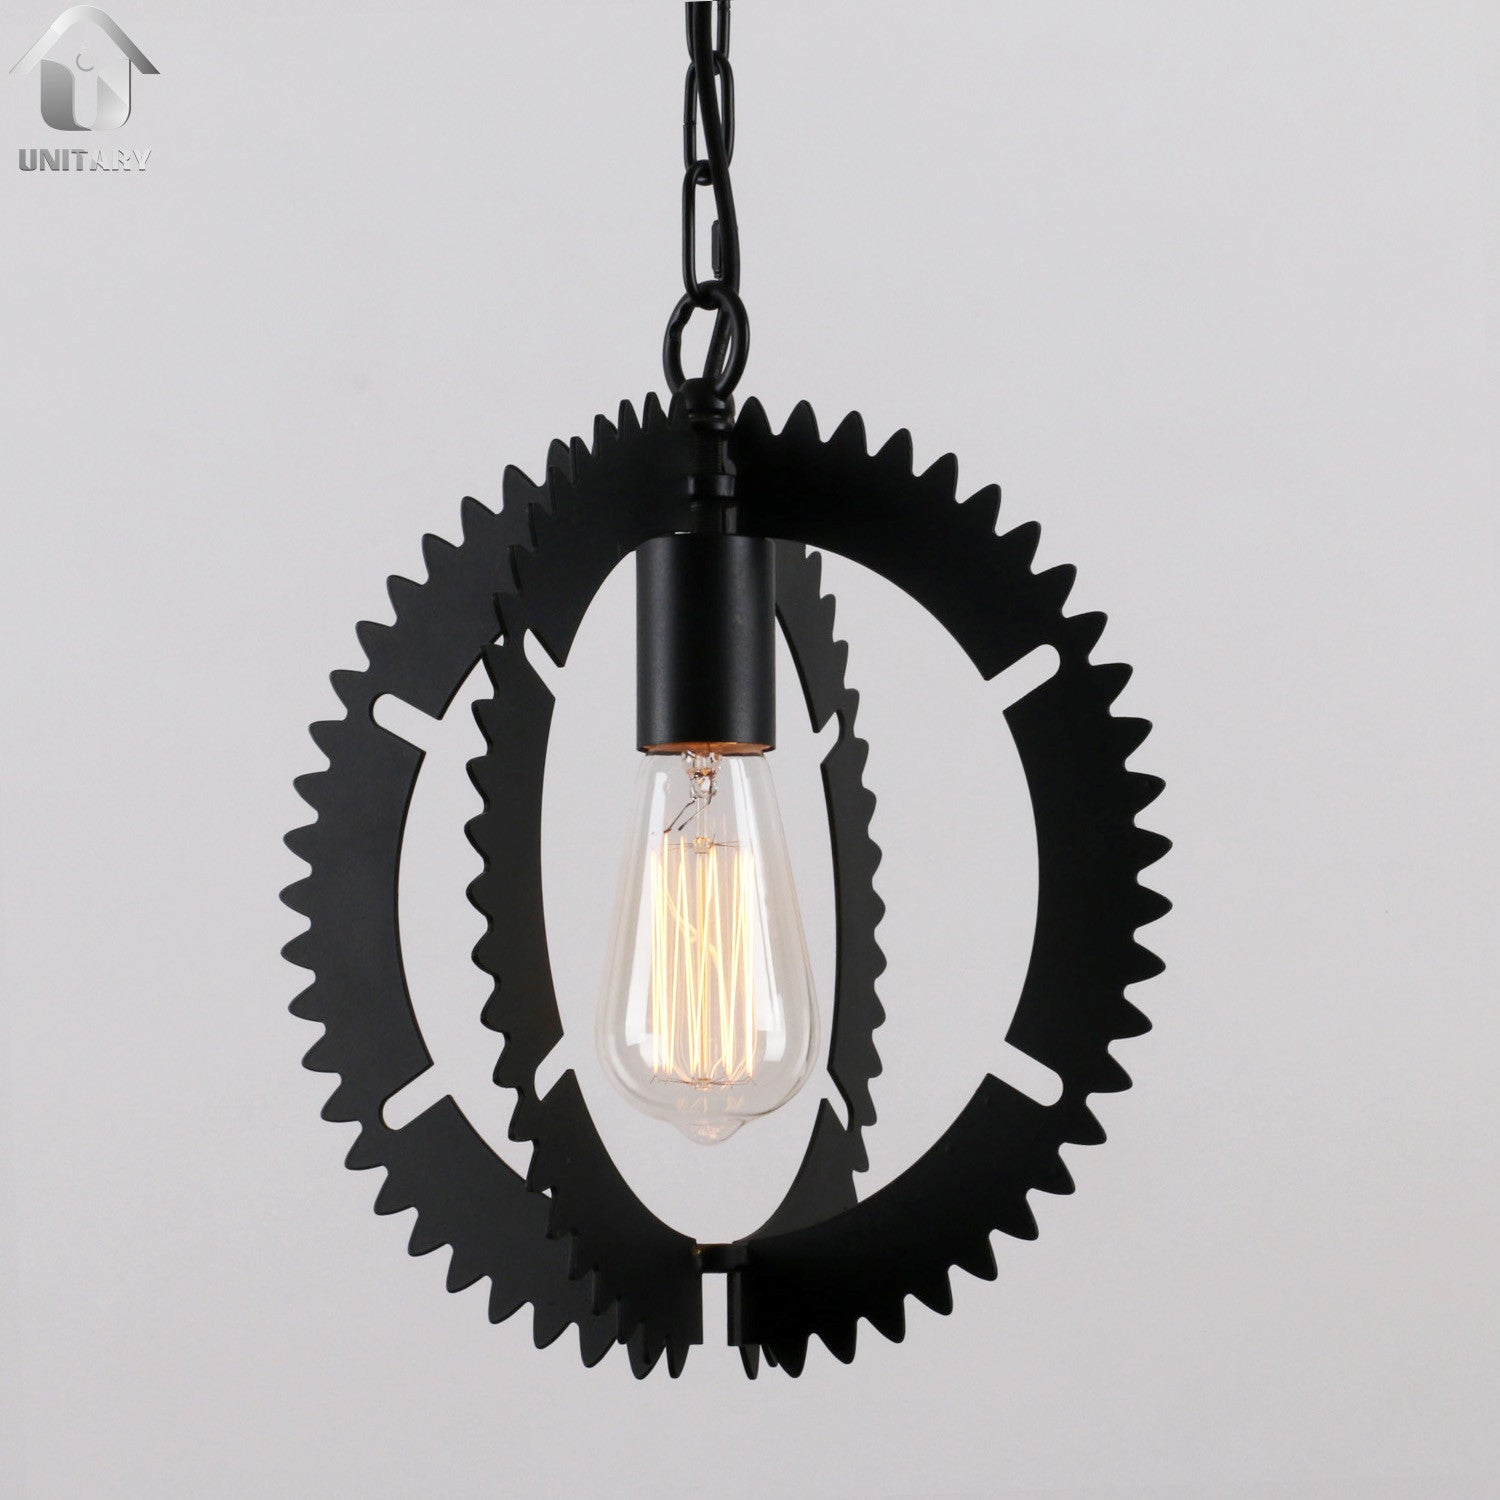 Black Vintage Metal Gear Hanging Ceiling Pendant Lighting